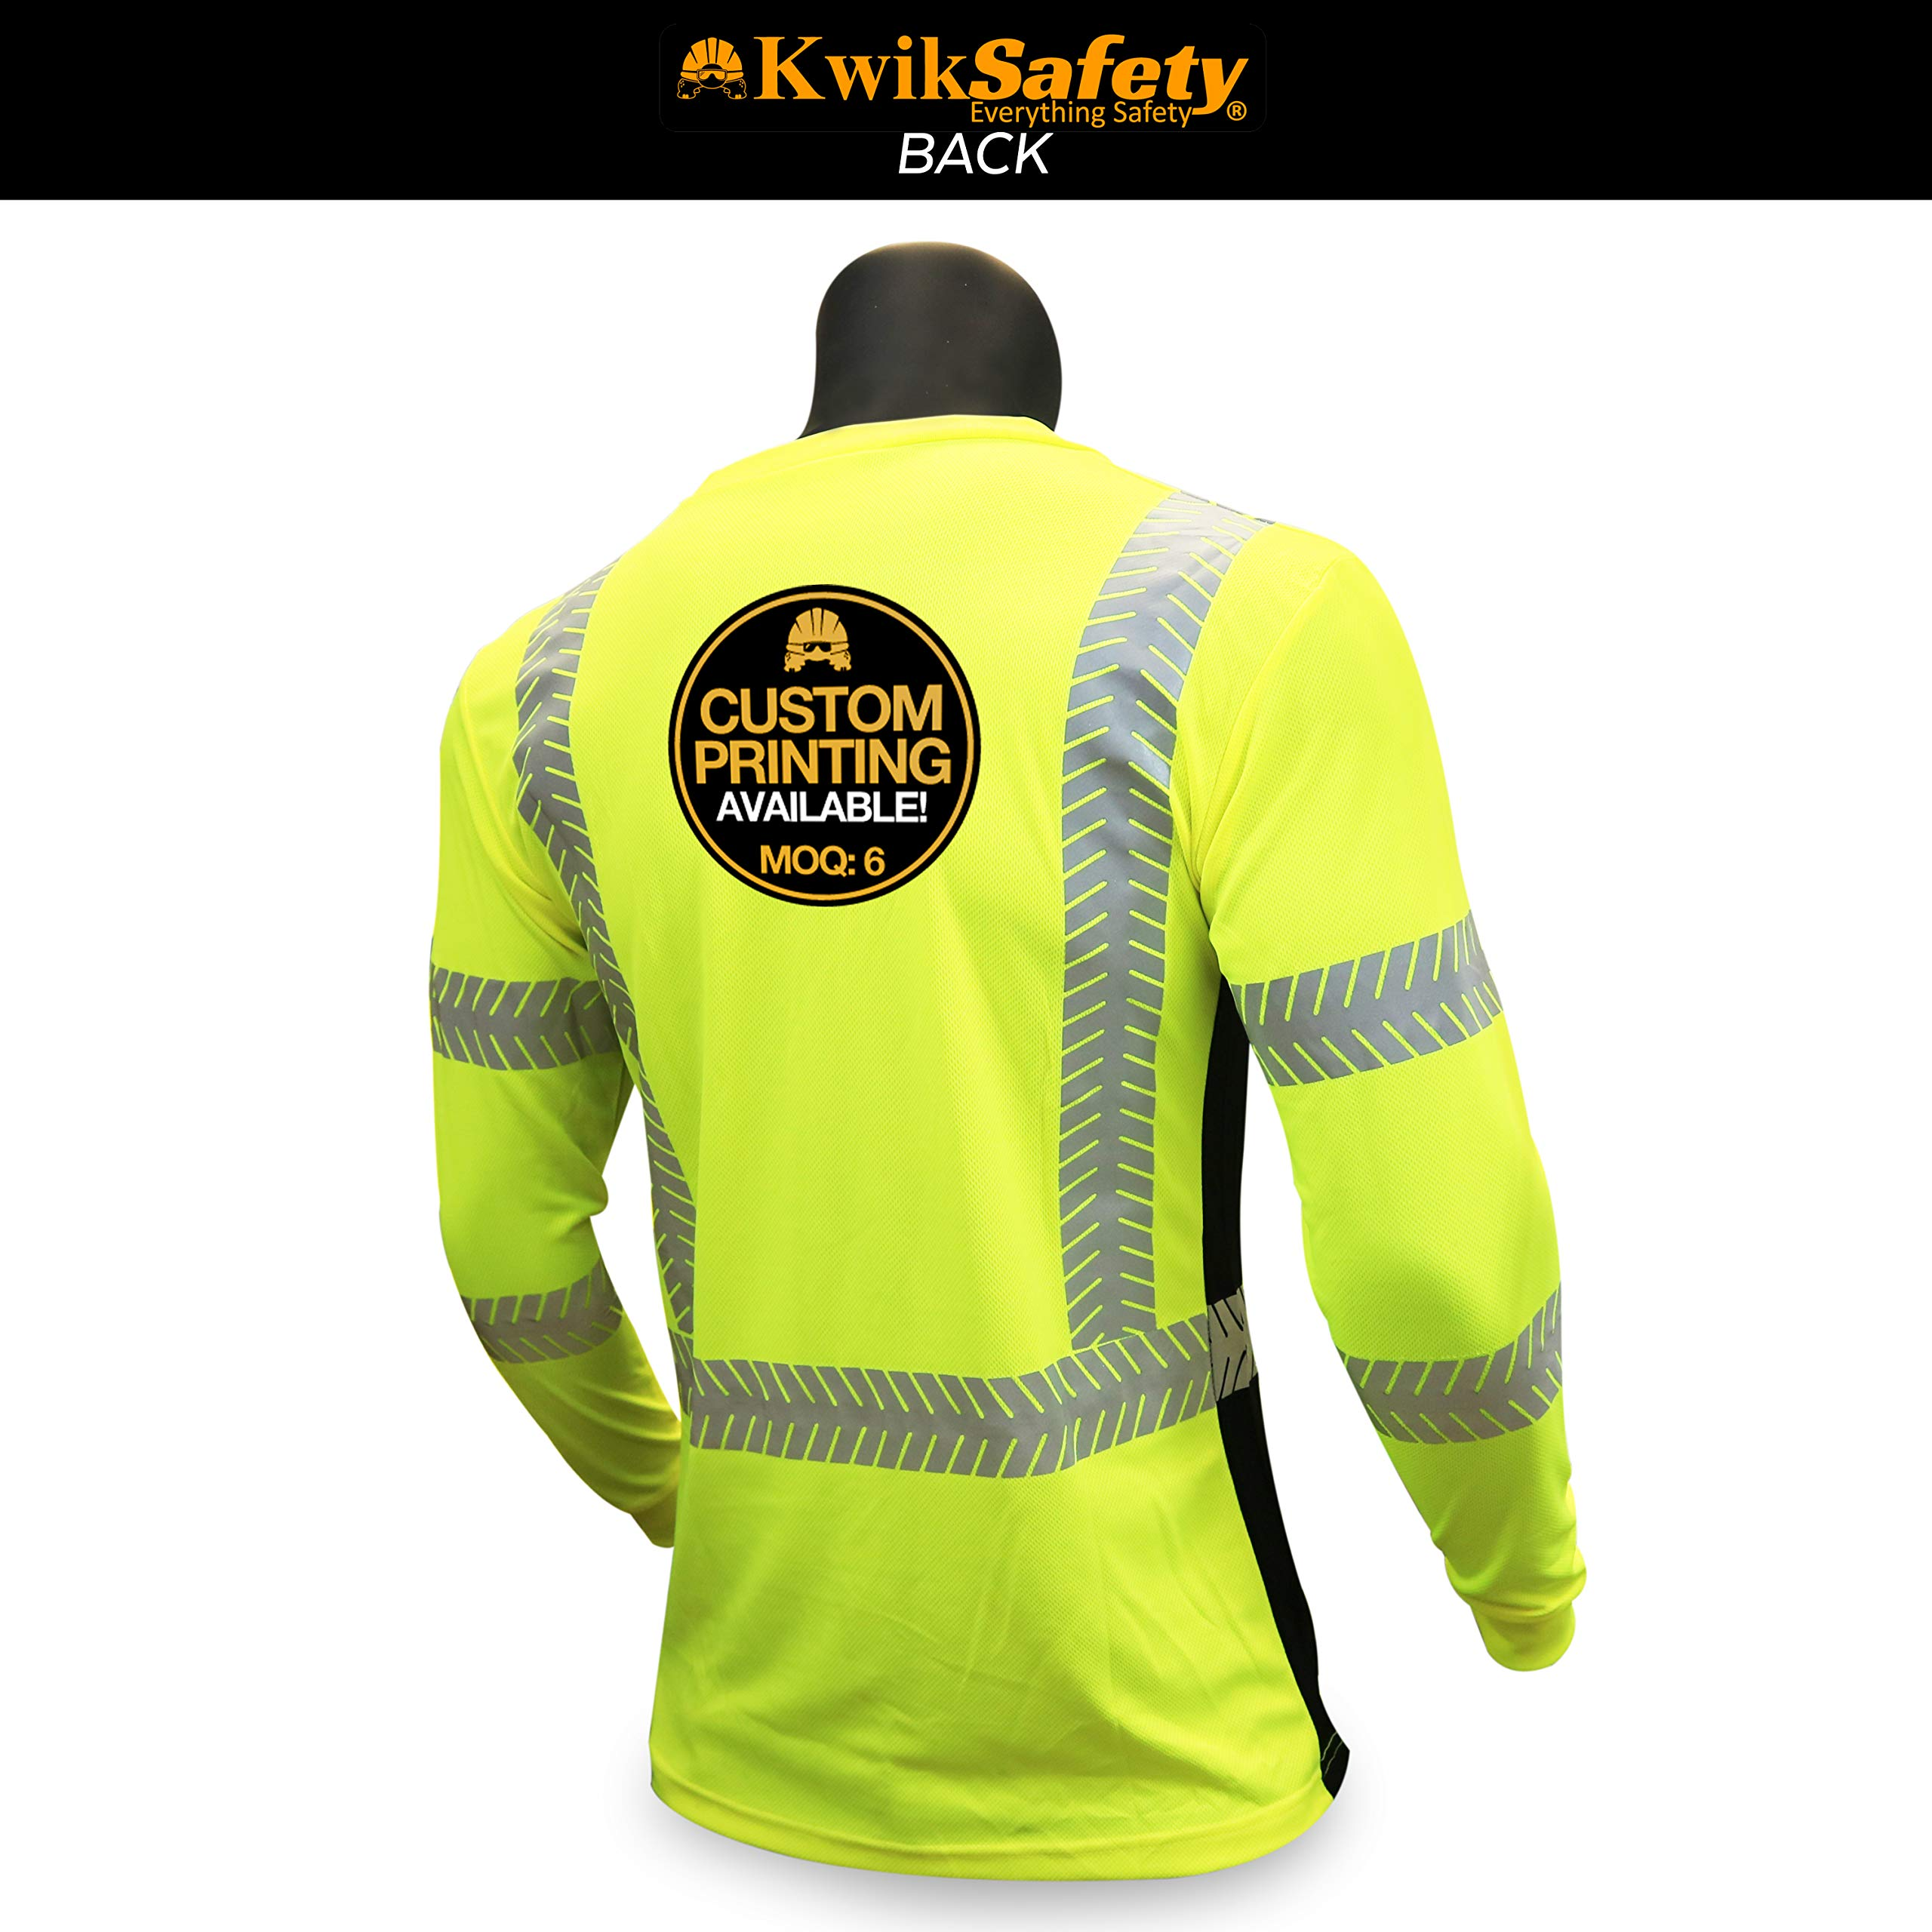 KwikSafety (Charlotte, NC) RENAISSANCE MAN (with POCKET) Class 3 ANSI High Visibility Safety Shirt Fishbone Reflective Tape Construction Security Hi Vis Clothing Men Long Sleeve Yellow Black XL by KwikSafety (Image #3)